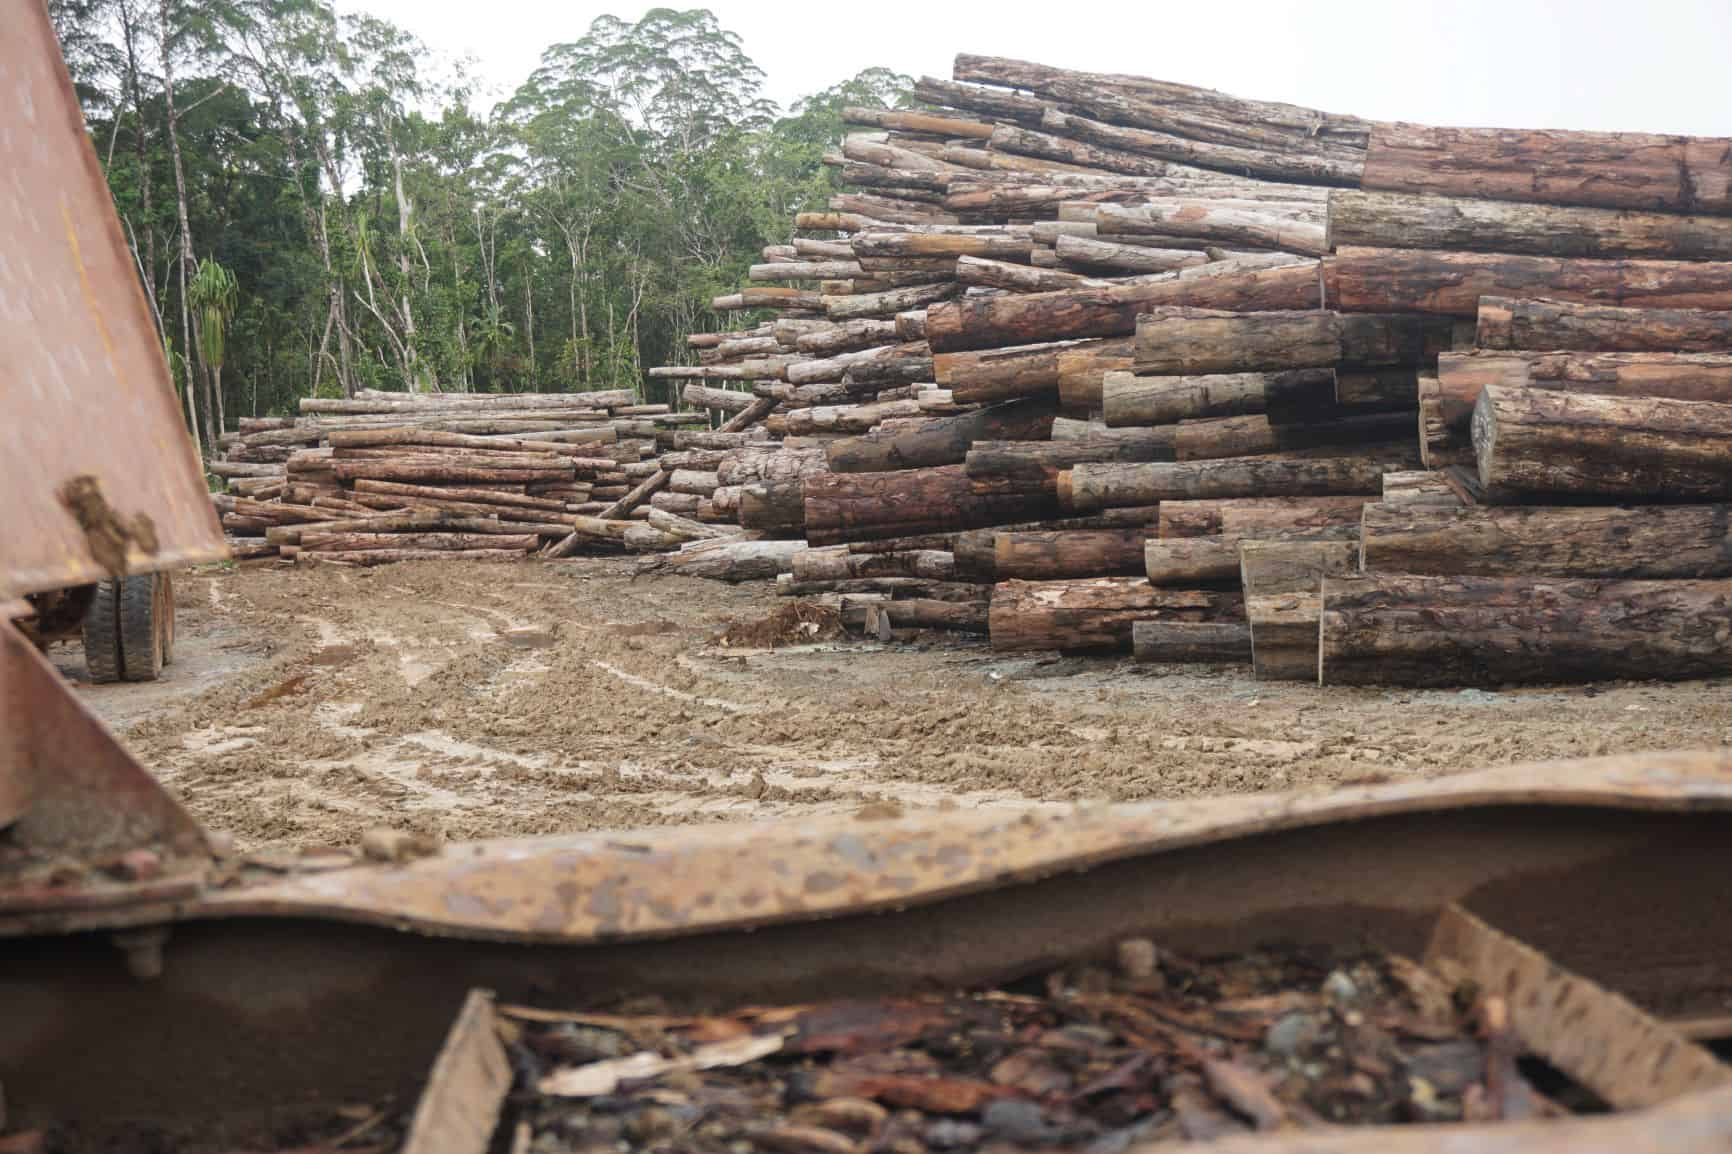 Large pile of logs